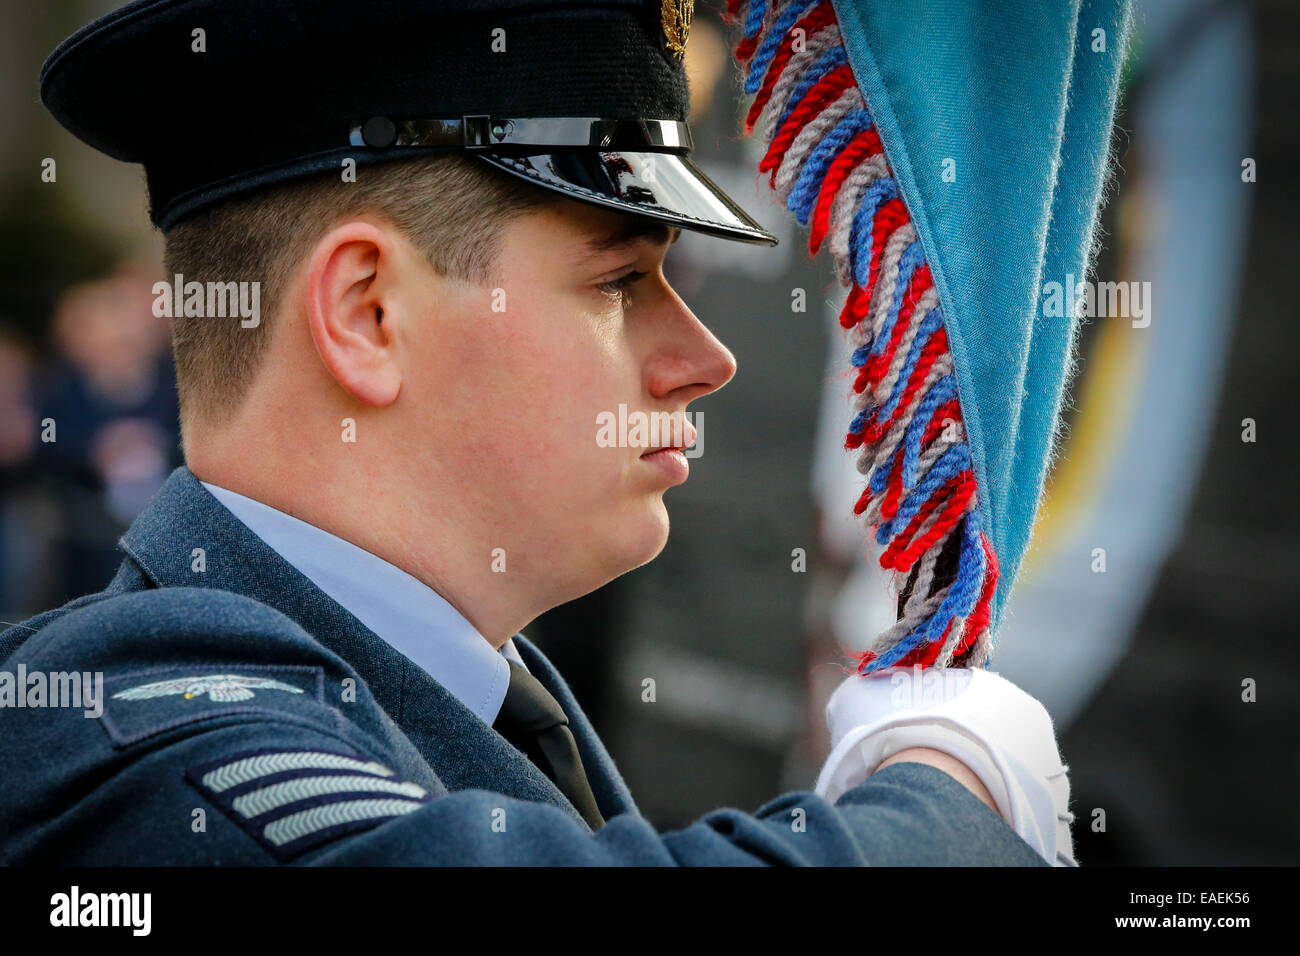 Sergeant in the Royal Air Force, standing to attention while being the standard bearer at a military parade, Glasgow, - Stock Image